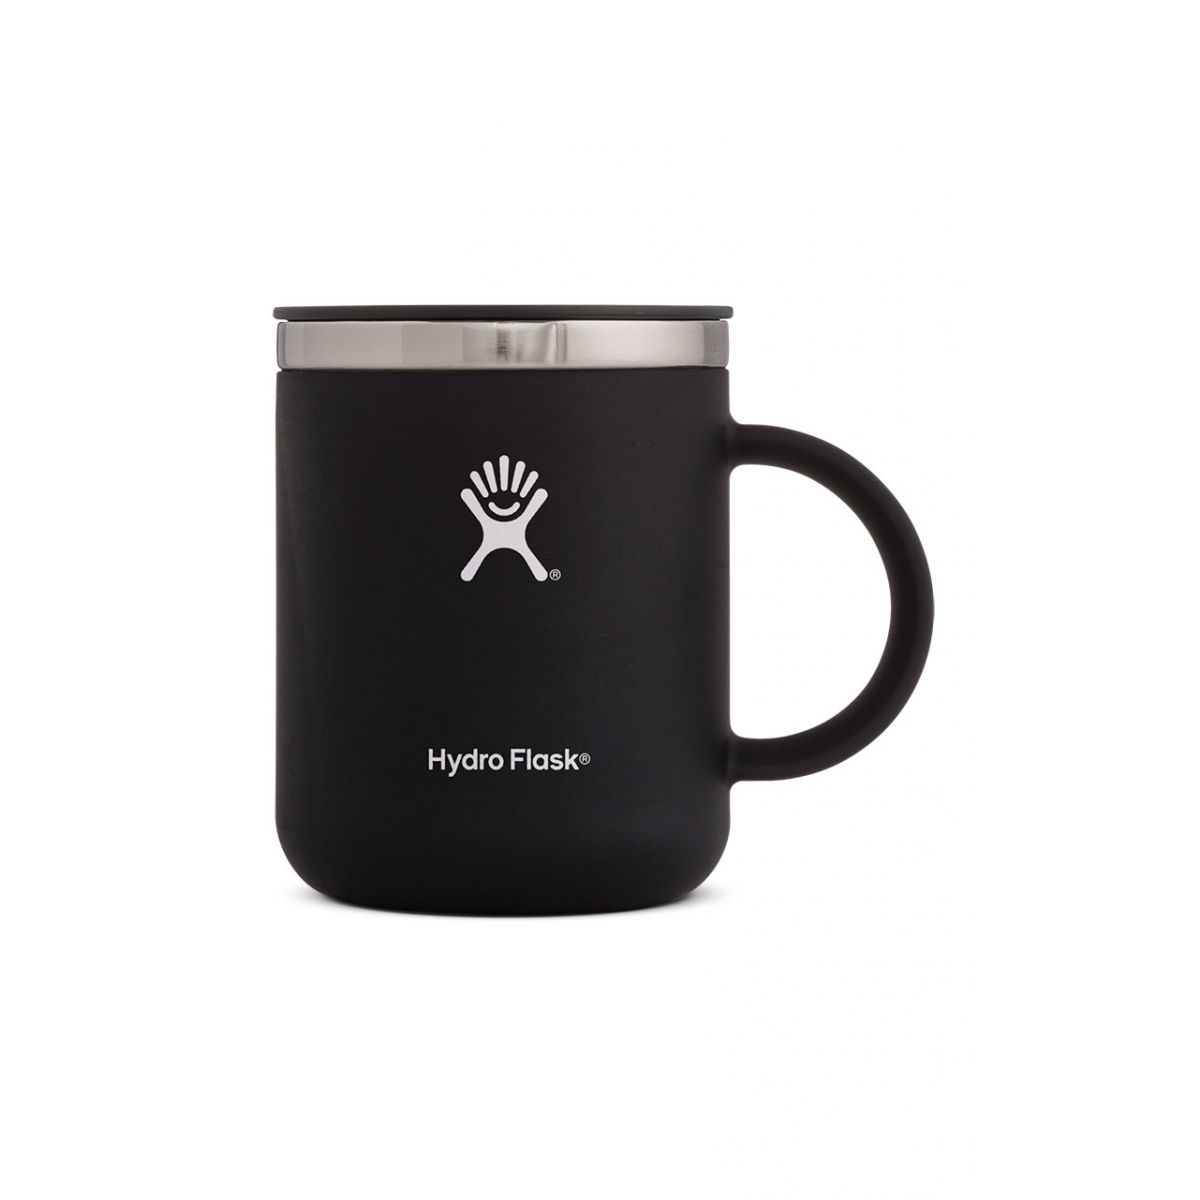 Hydro Flask 12 oz (355 ml) Coffee Mug - Black - Pre Order